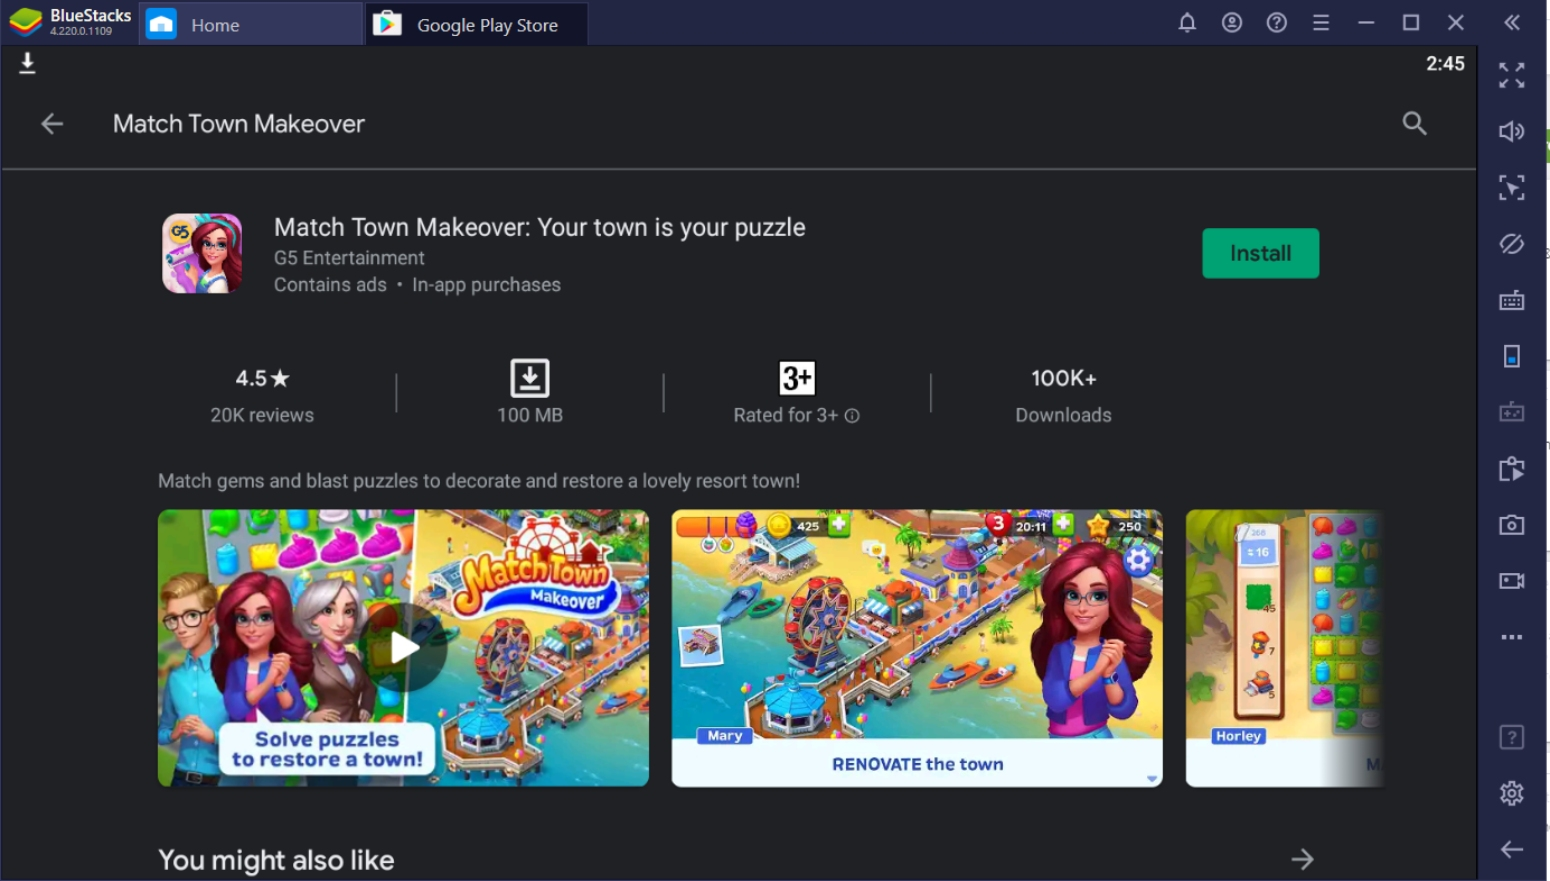 Play Match Town Makeover on PC with BlueStacks